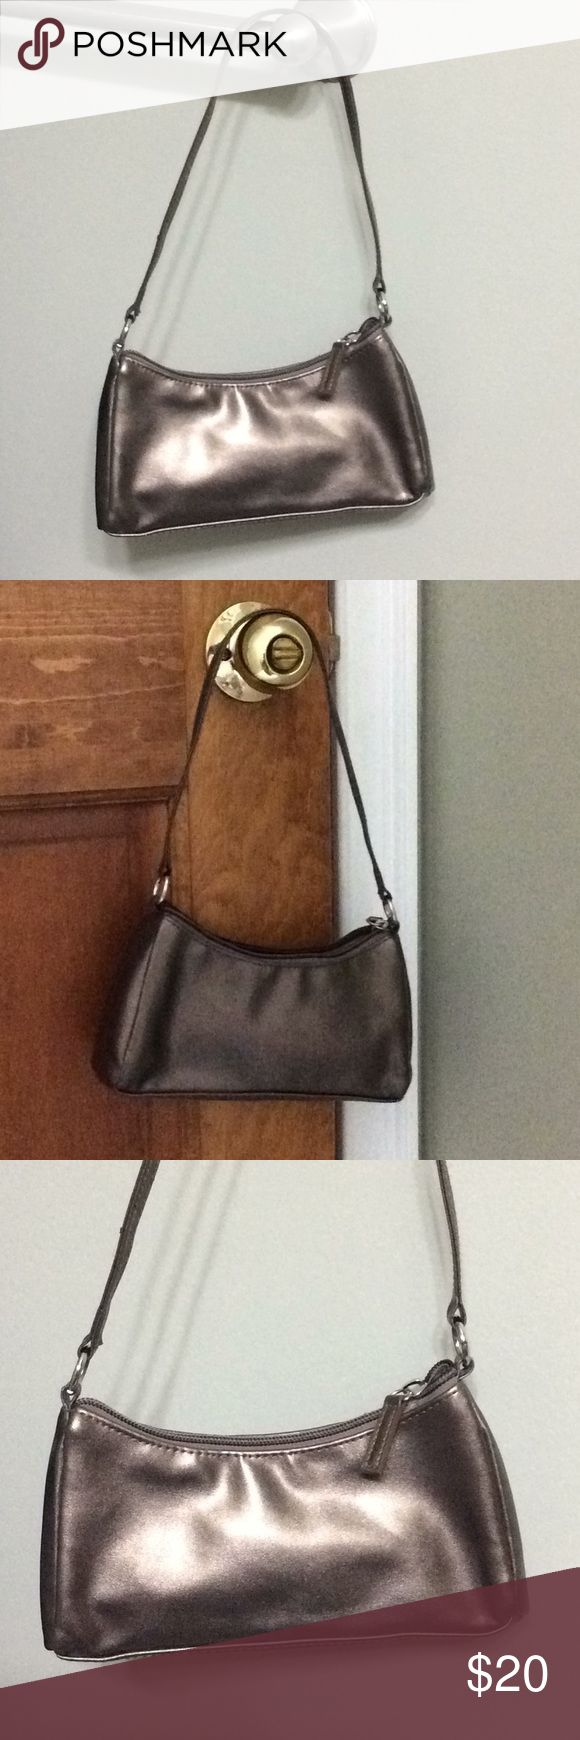 Bronze patent purse small Florence & Fred F+F Authentic Florence + Fred bronze metallic patent purse. Ireland's premier Tesco brand It's dainty and small yet elegant and big enough for the items necessary for date night or the prom! Florence + Fred Bags Clutches & Wristlets